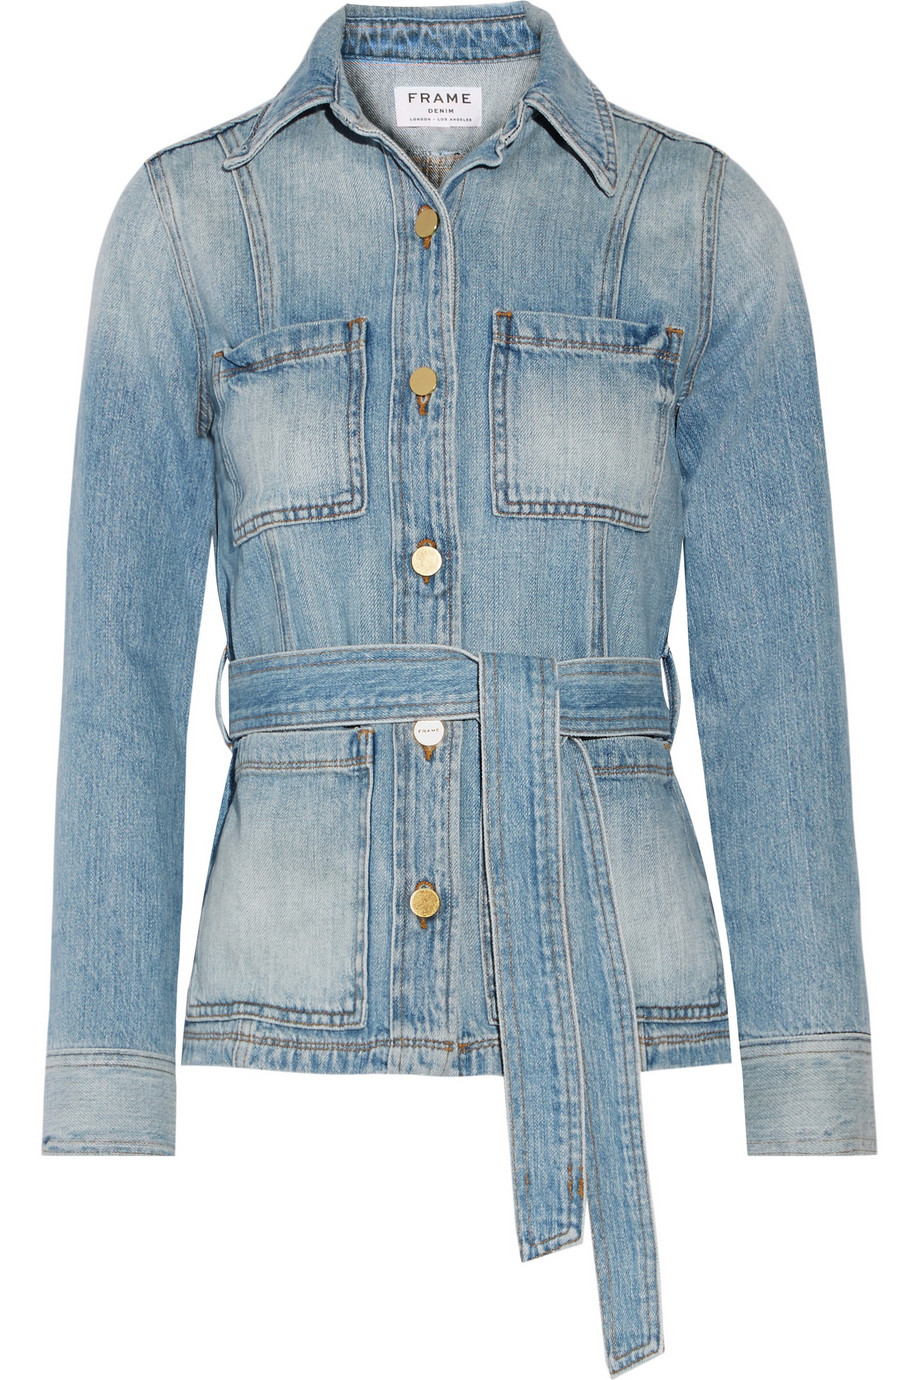 10 Denim Jackets for Women - Classic Jean Jacket Options for ...